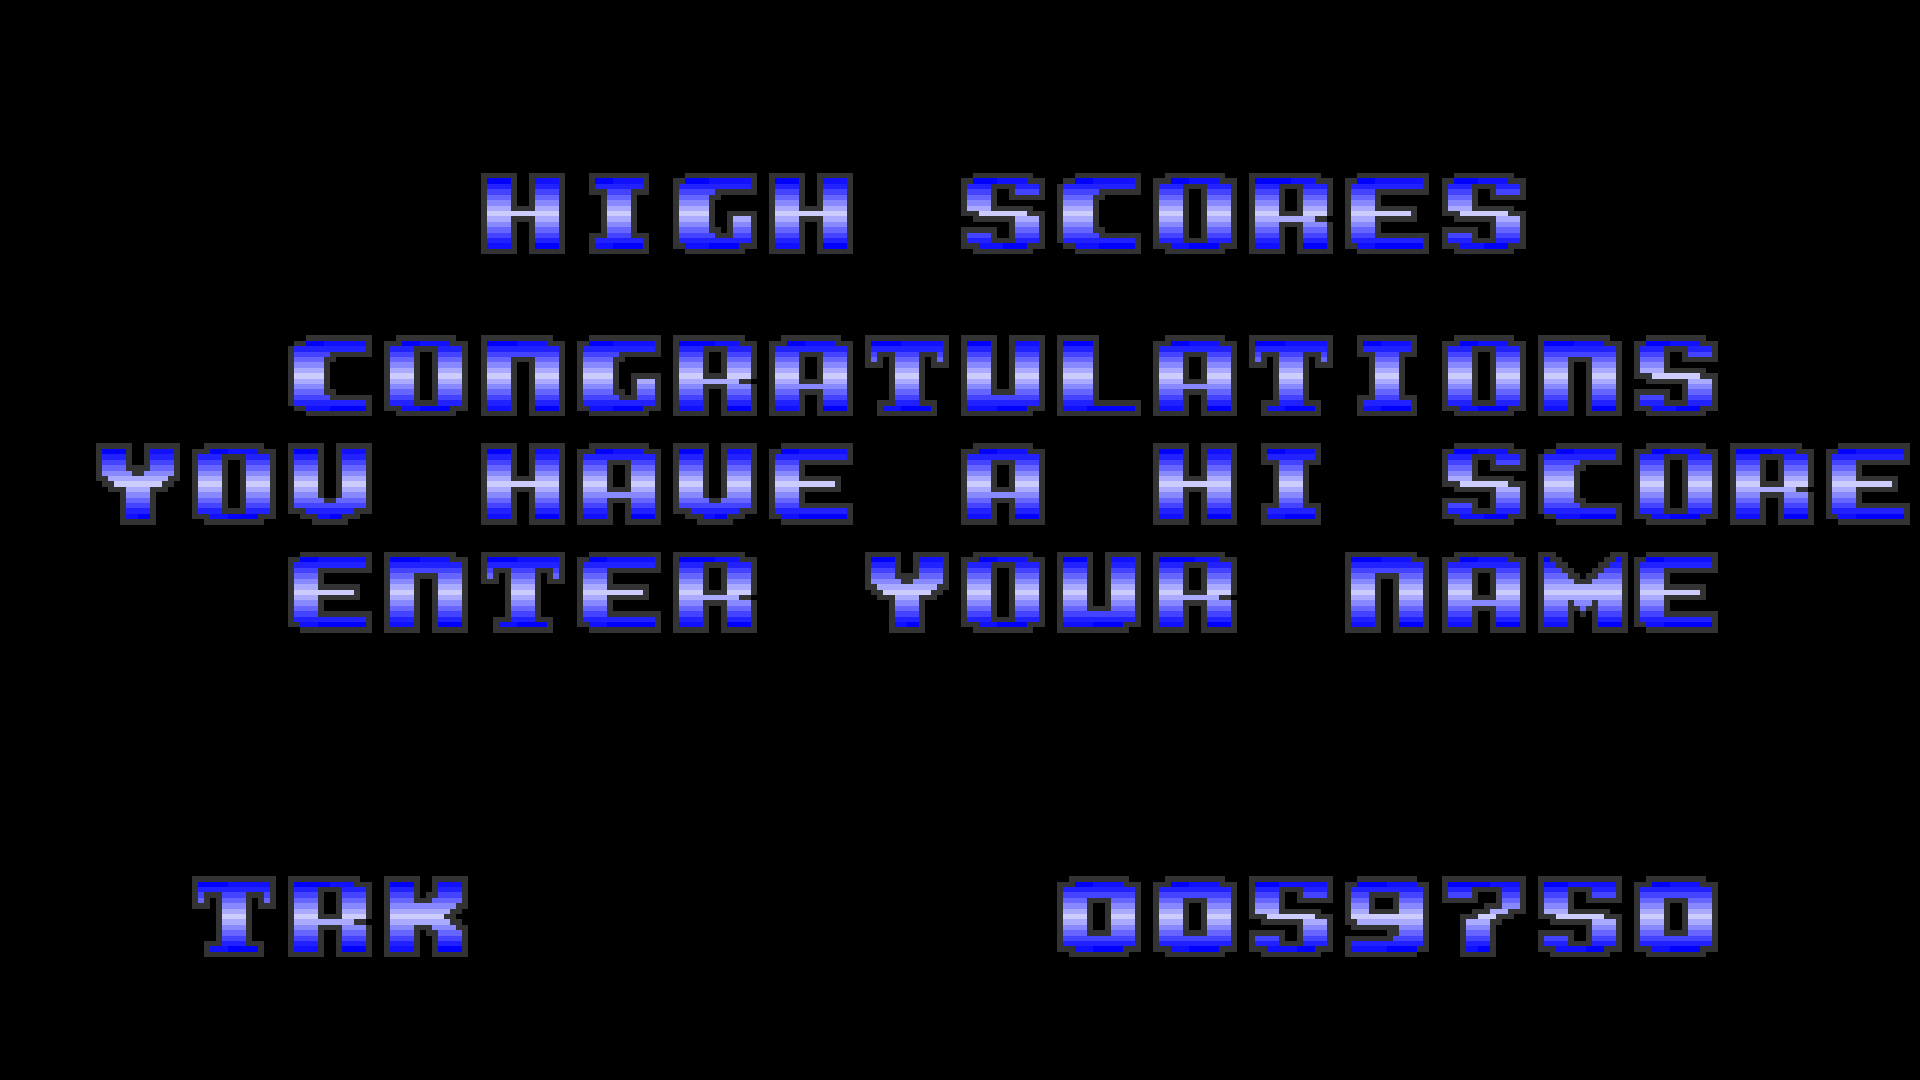 TheTrickster: Hawkeye (Amiga Emulated) 59,750 points on 2015-07-25 08:28:02